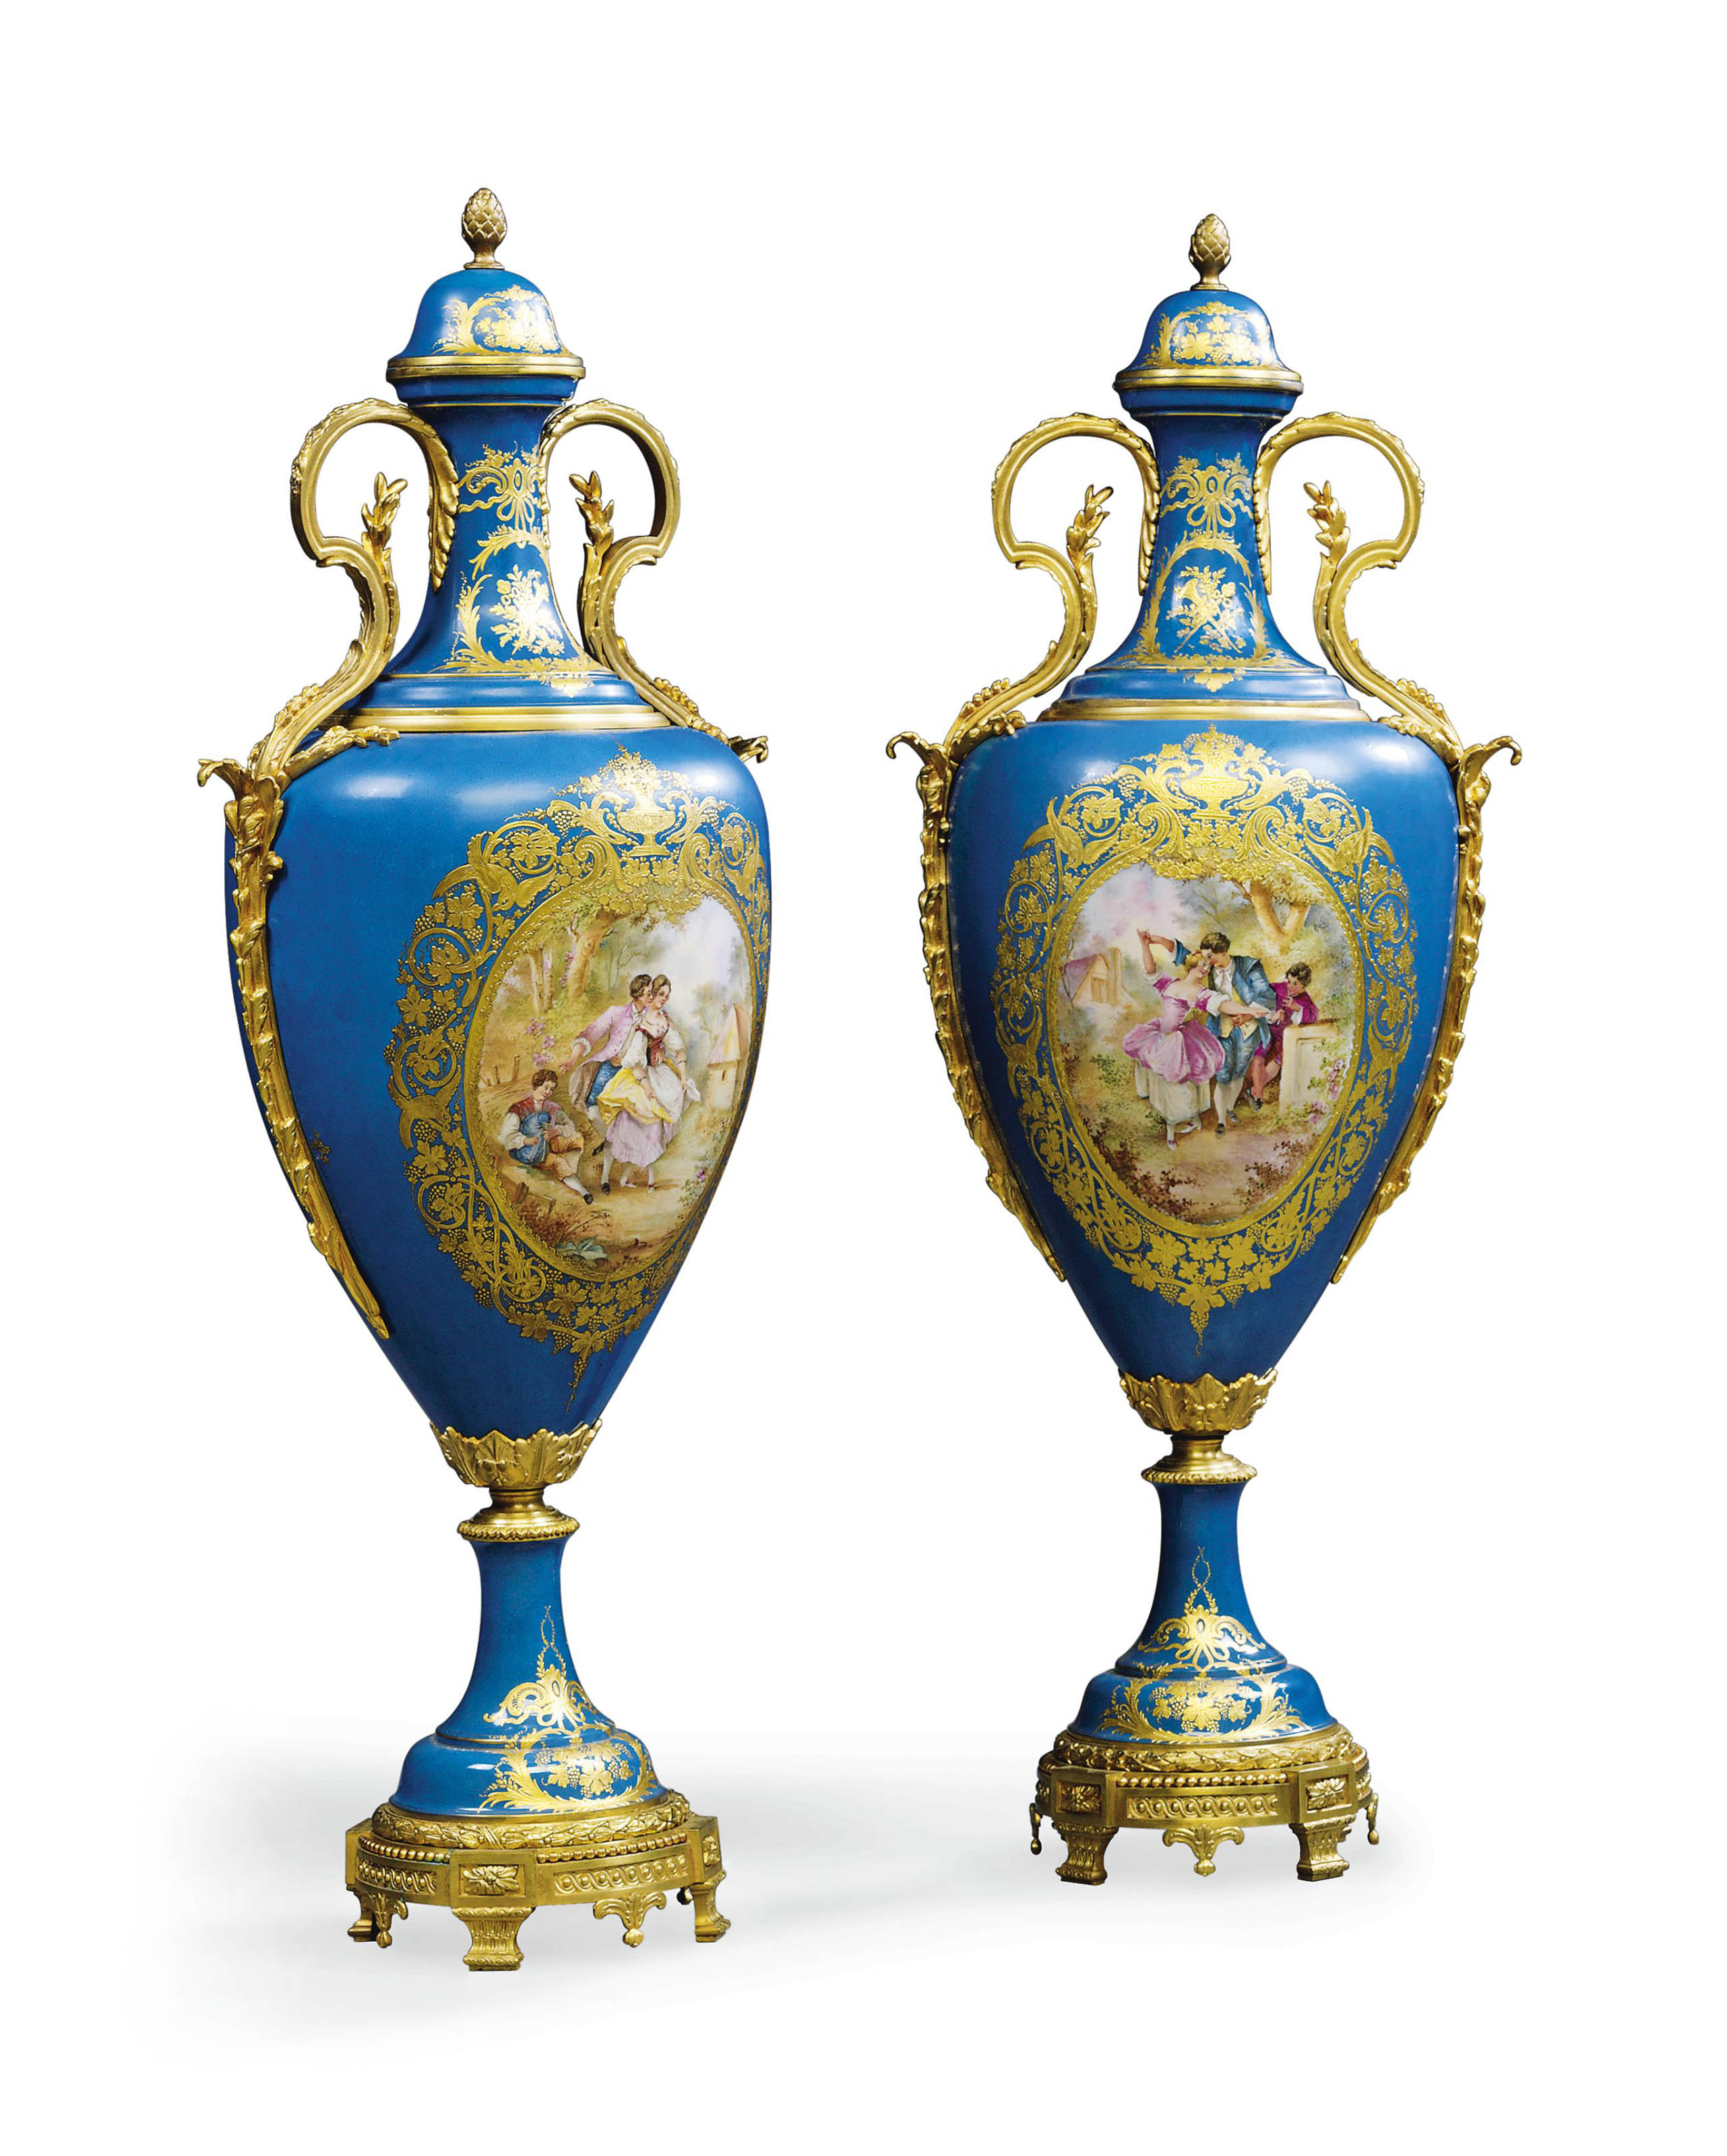 A PAIR OF ORMOLU-MOUNTED SEVRES-STYLE TURQUOISE-GROUND